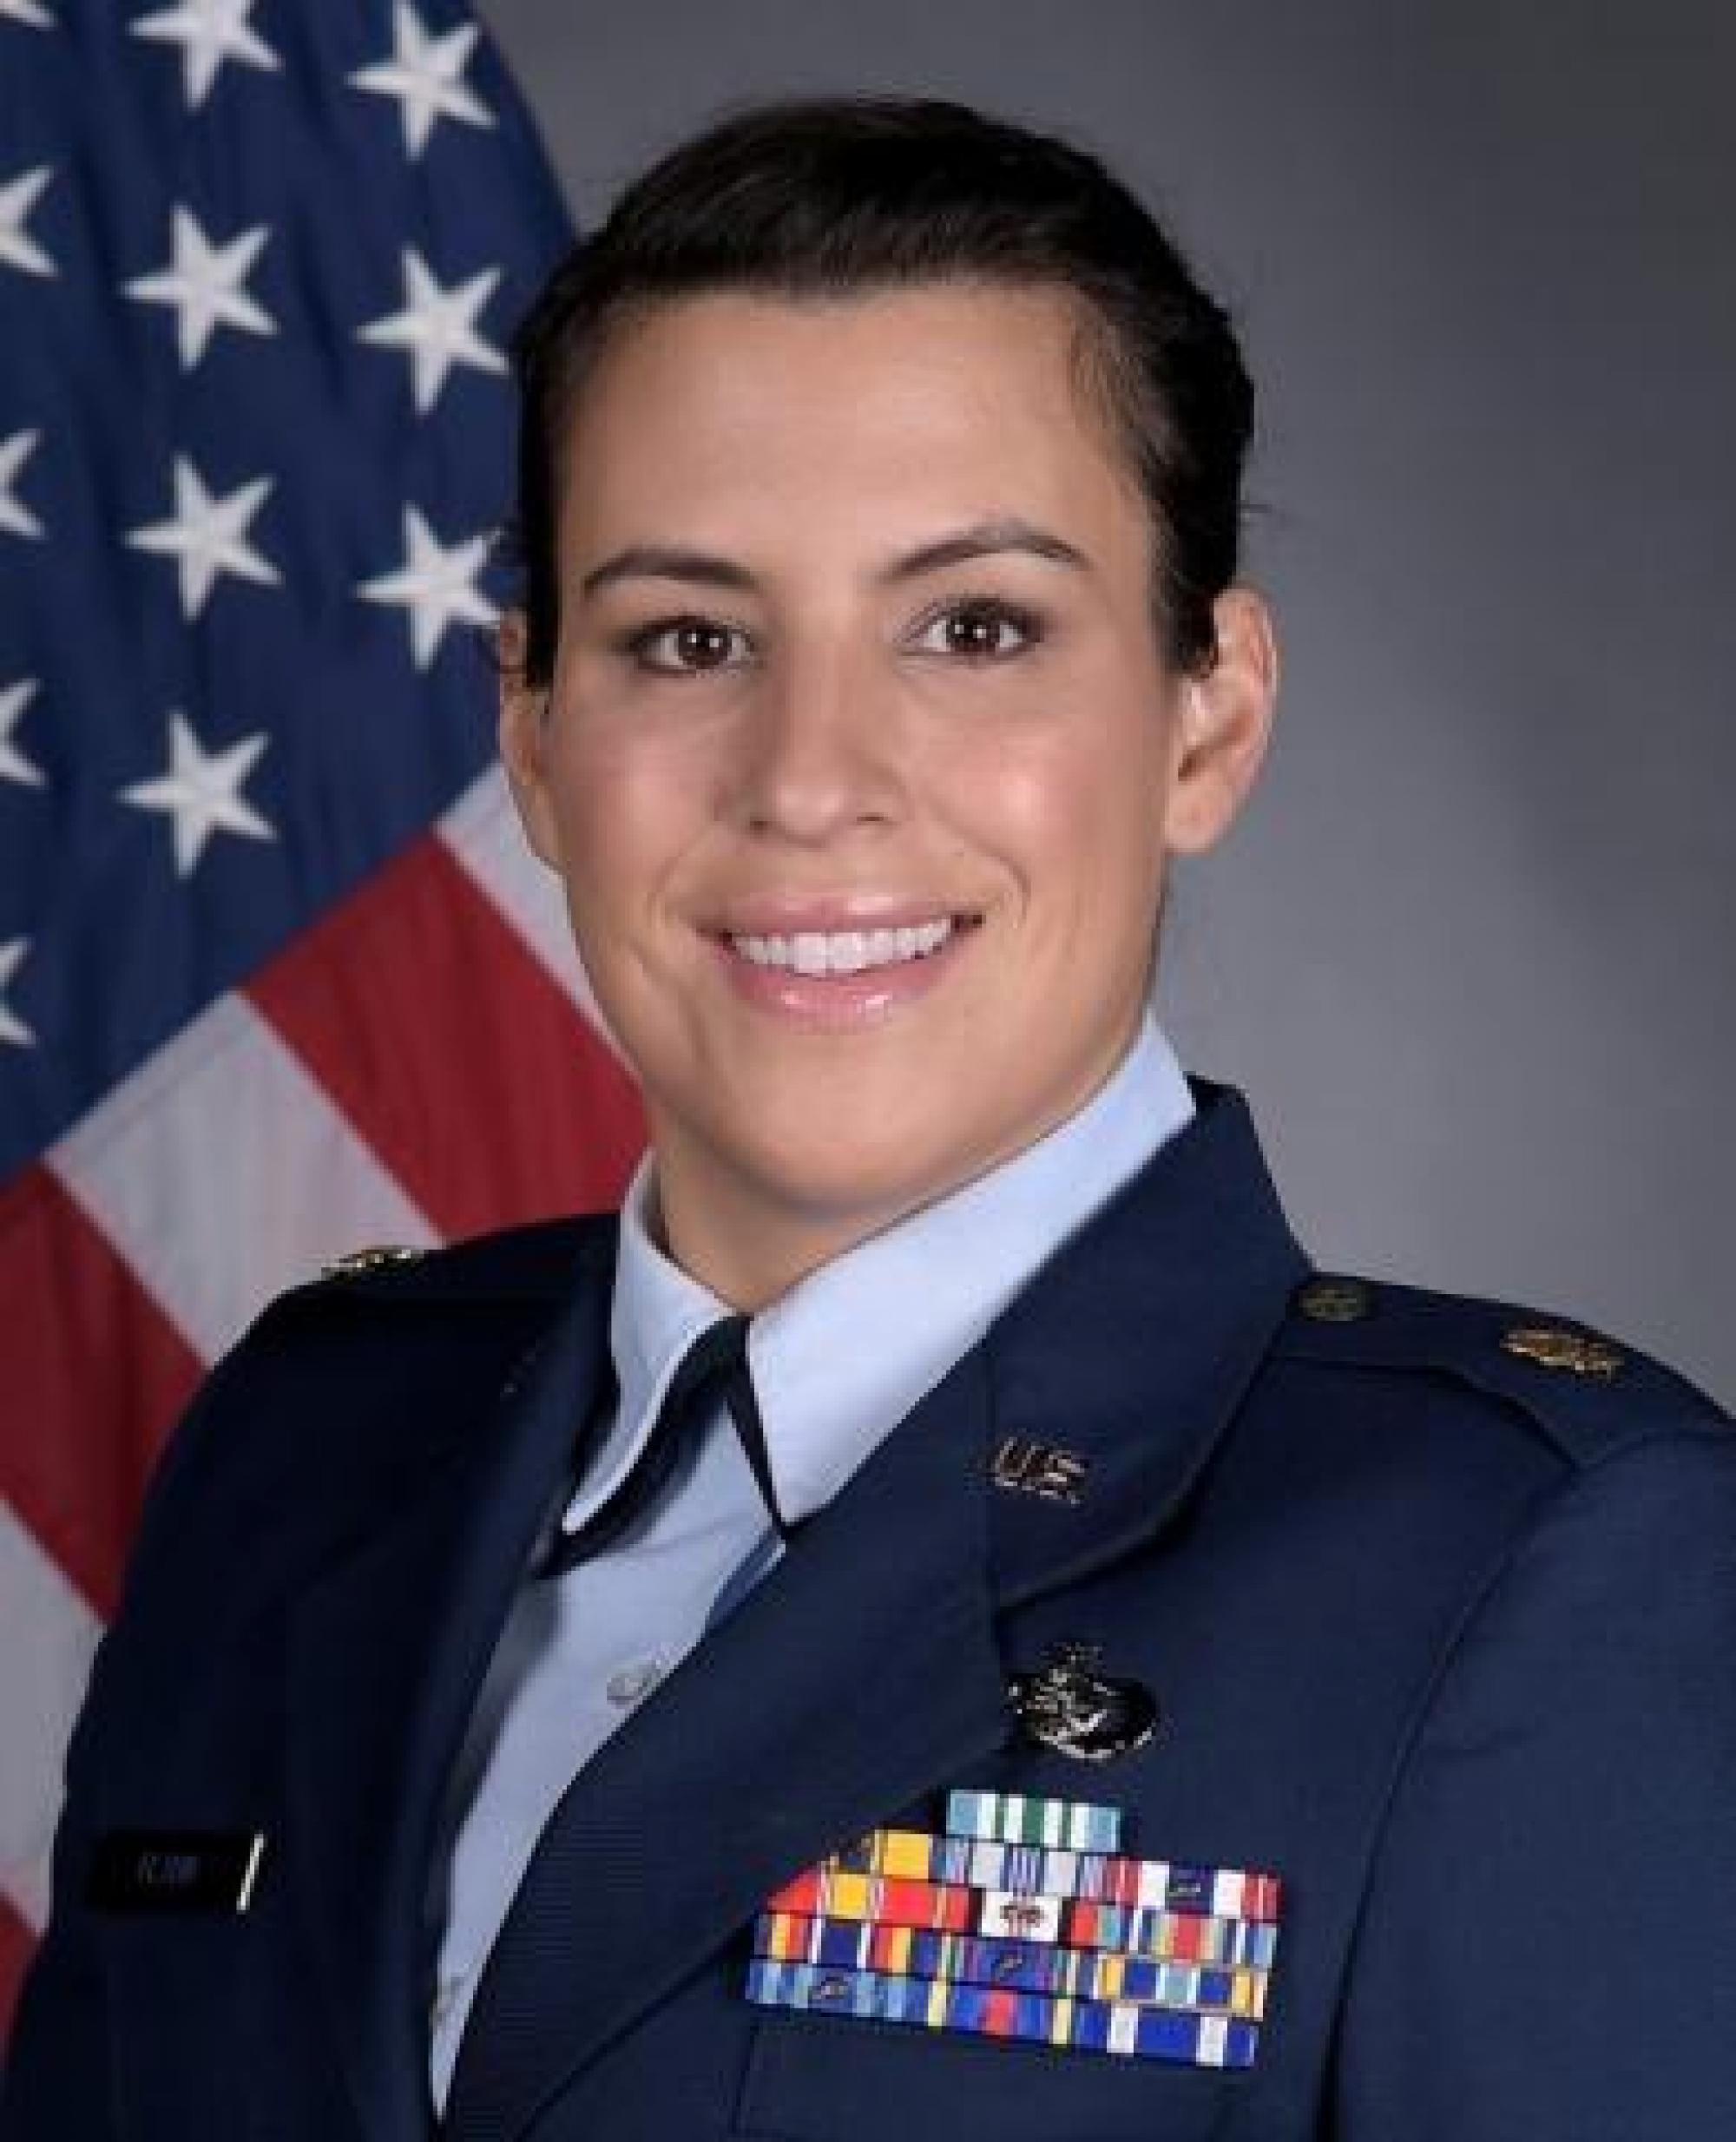 As an assistant professor, Maj. Christina Flynn teaches courses on aerospace studies at the UA. As an officer in the ROTC program, she teaches cadets the core values that will help them succeed in the military and in life.